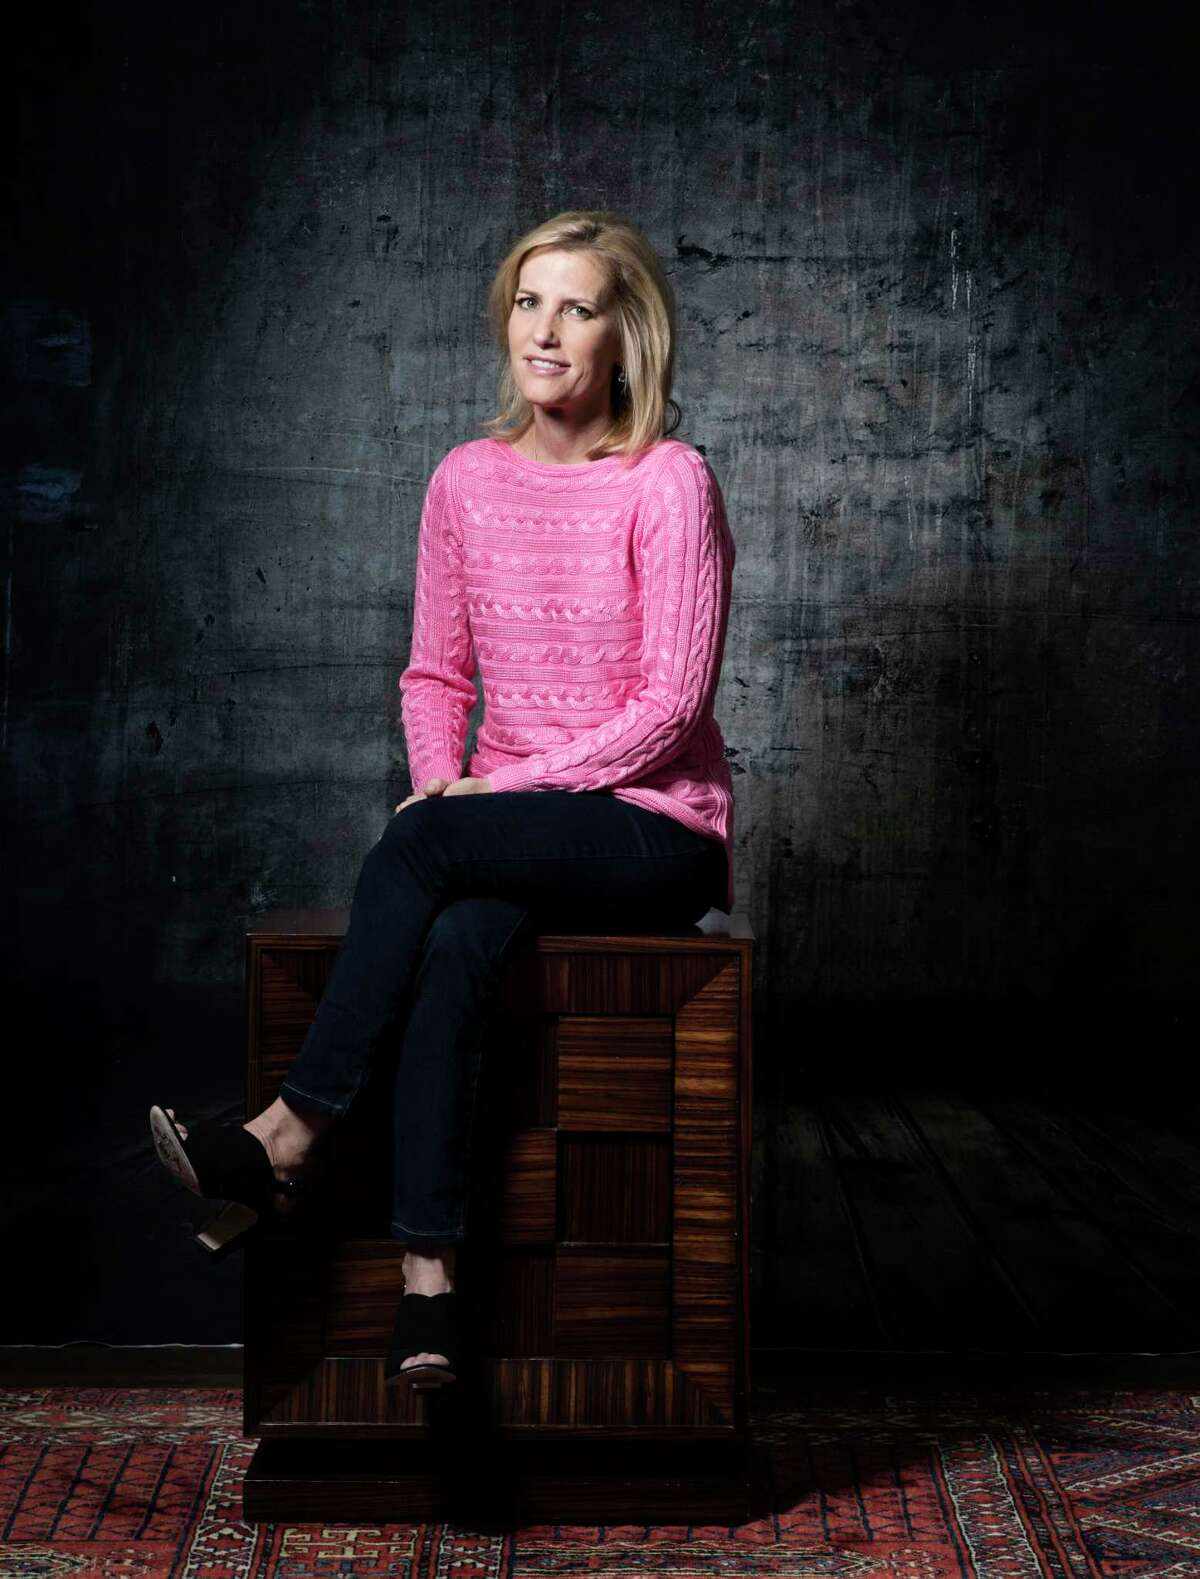 """""""I never forget where I came from - ever,"""" said Laura Ingraham, the conservative talk radio star now stepping up to television with a new Fox News show."""